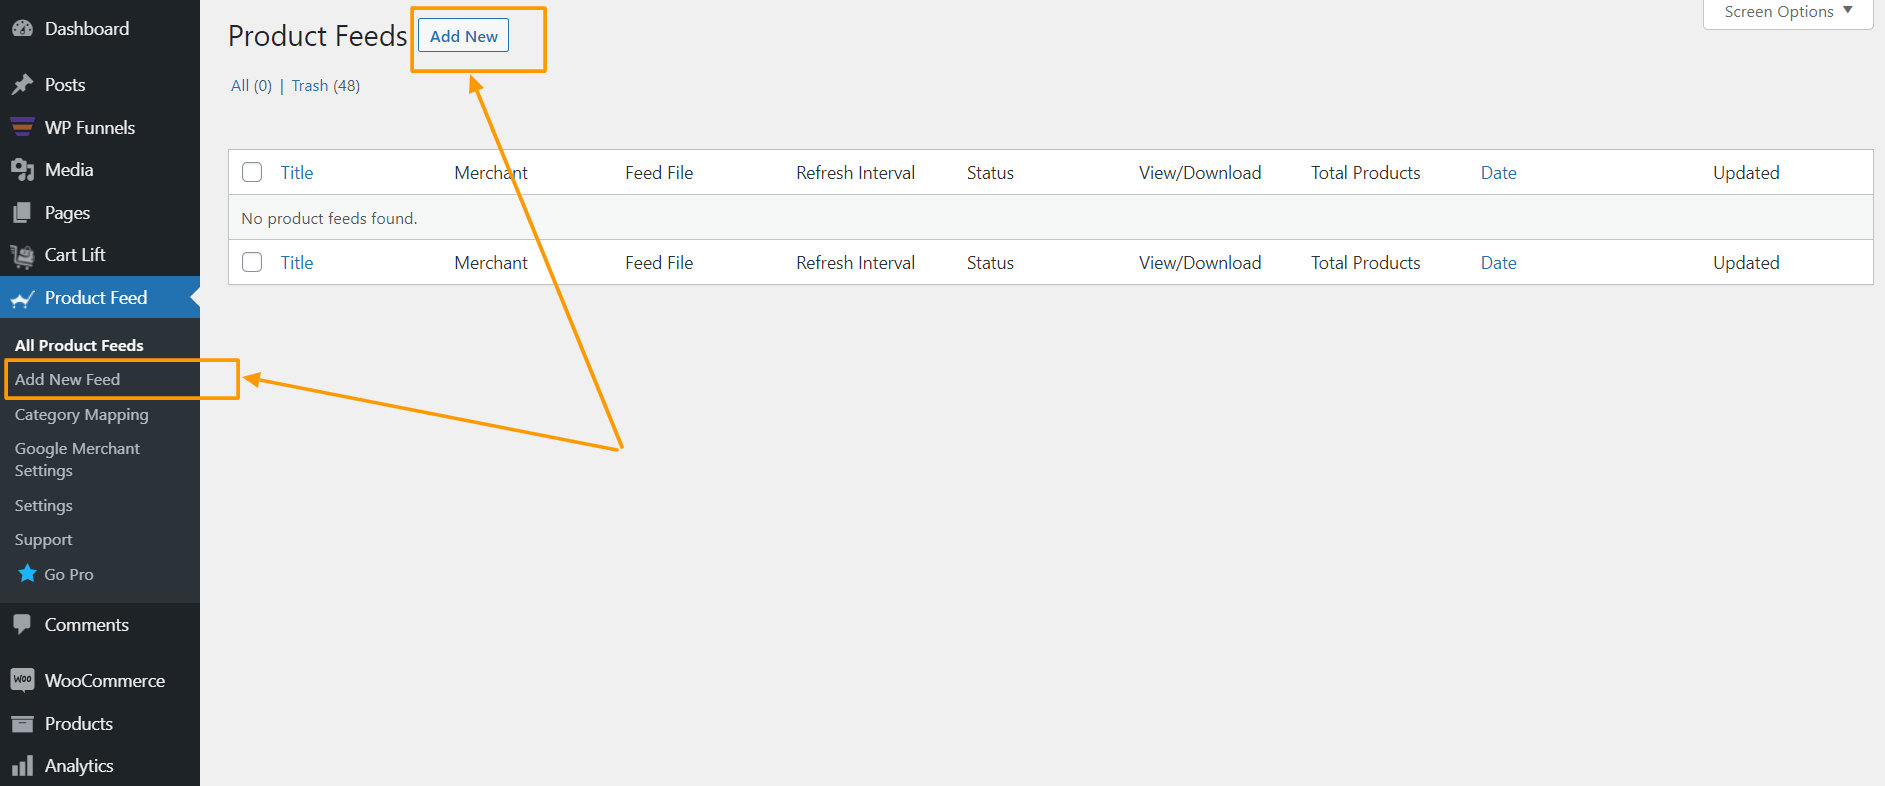 Product Feed Manager Create New Feed